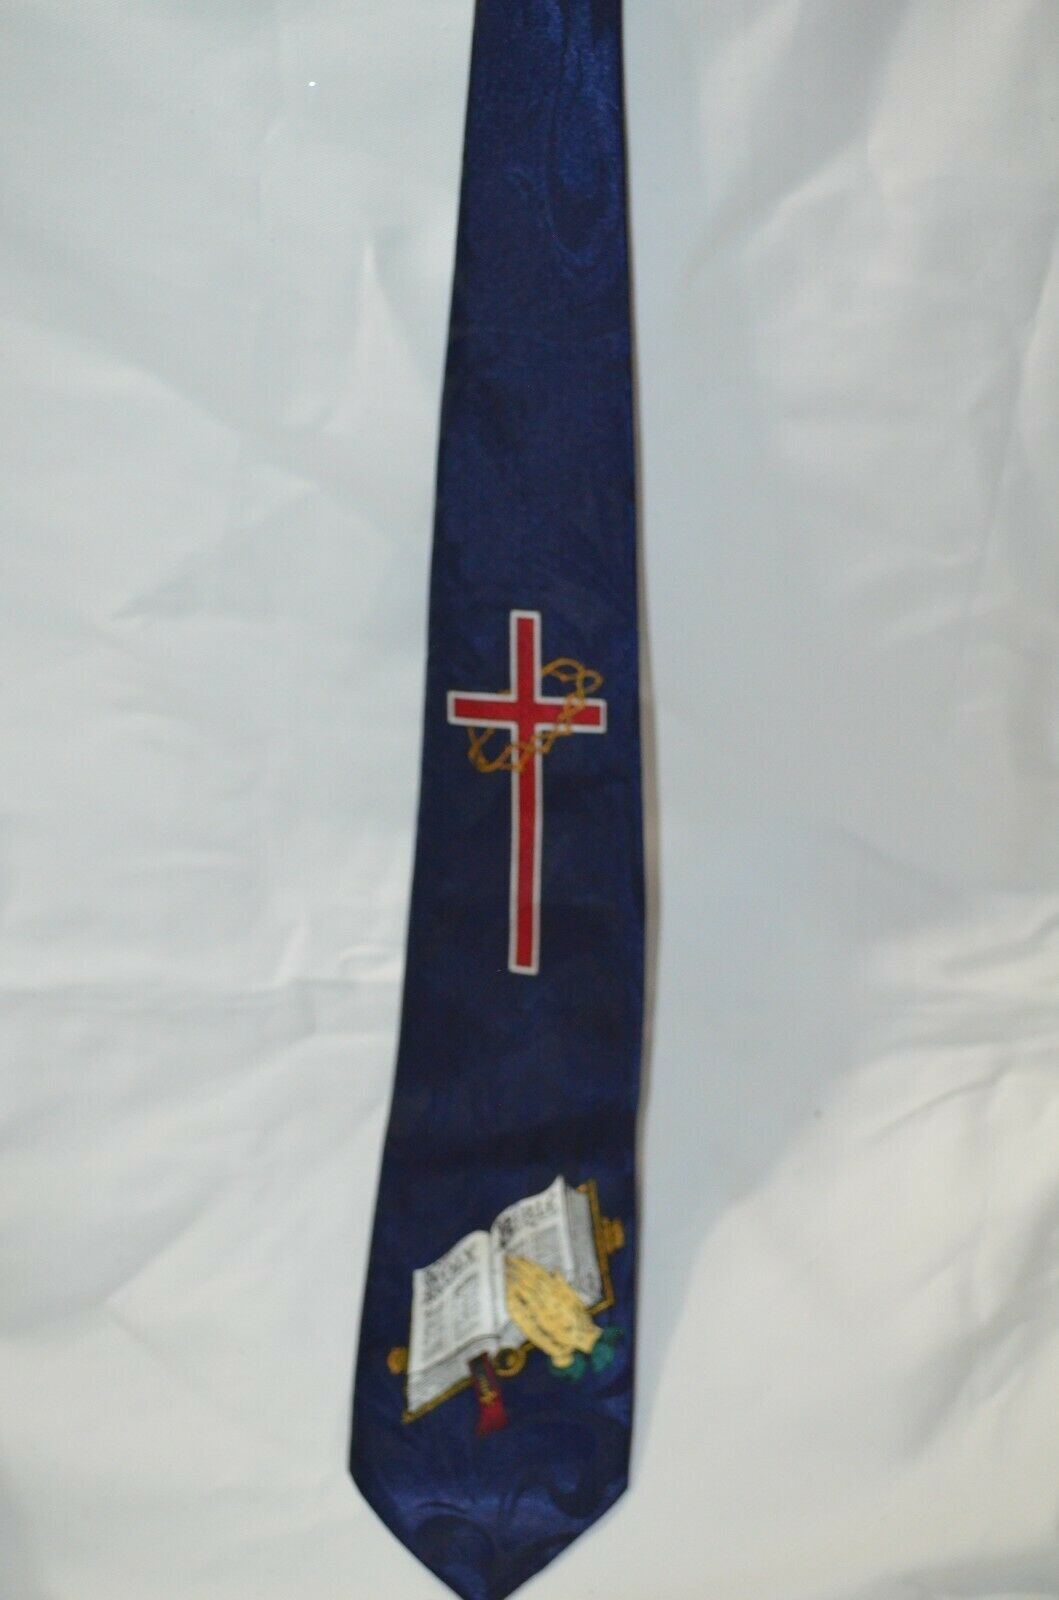 Cross Holy Bible Necktie Tie Religious Jesus Fratello Hand Made Blue Maroon